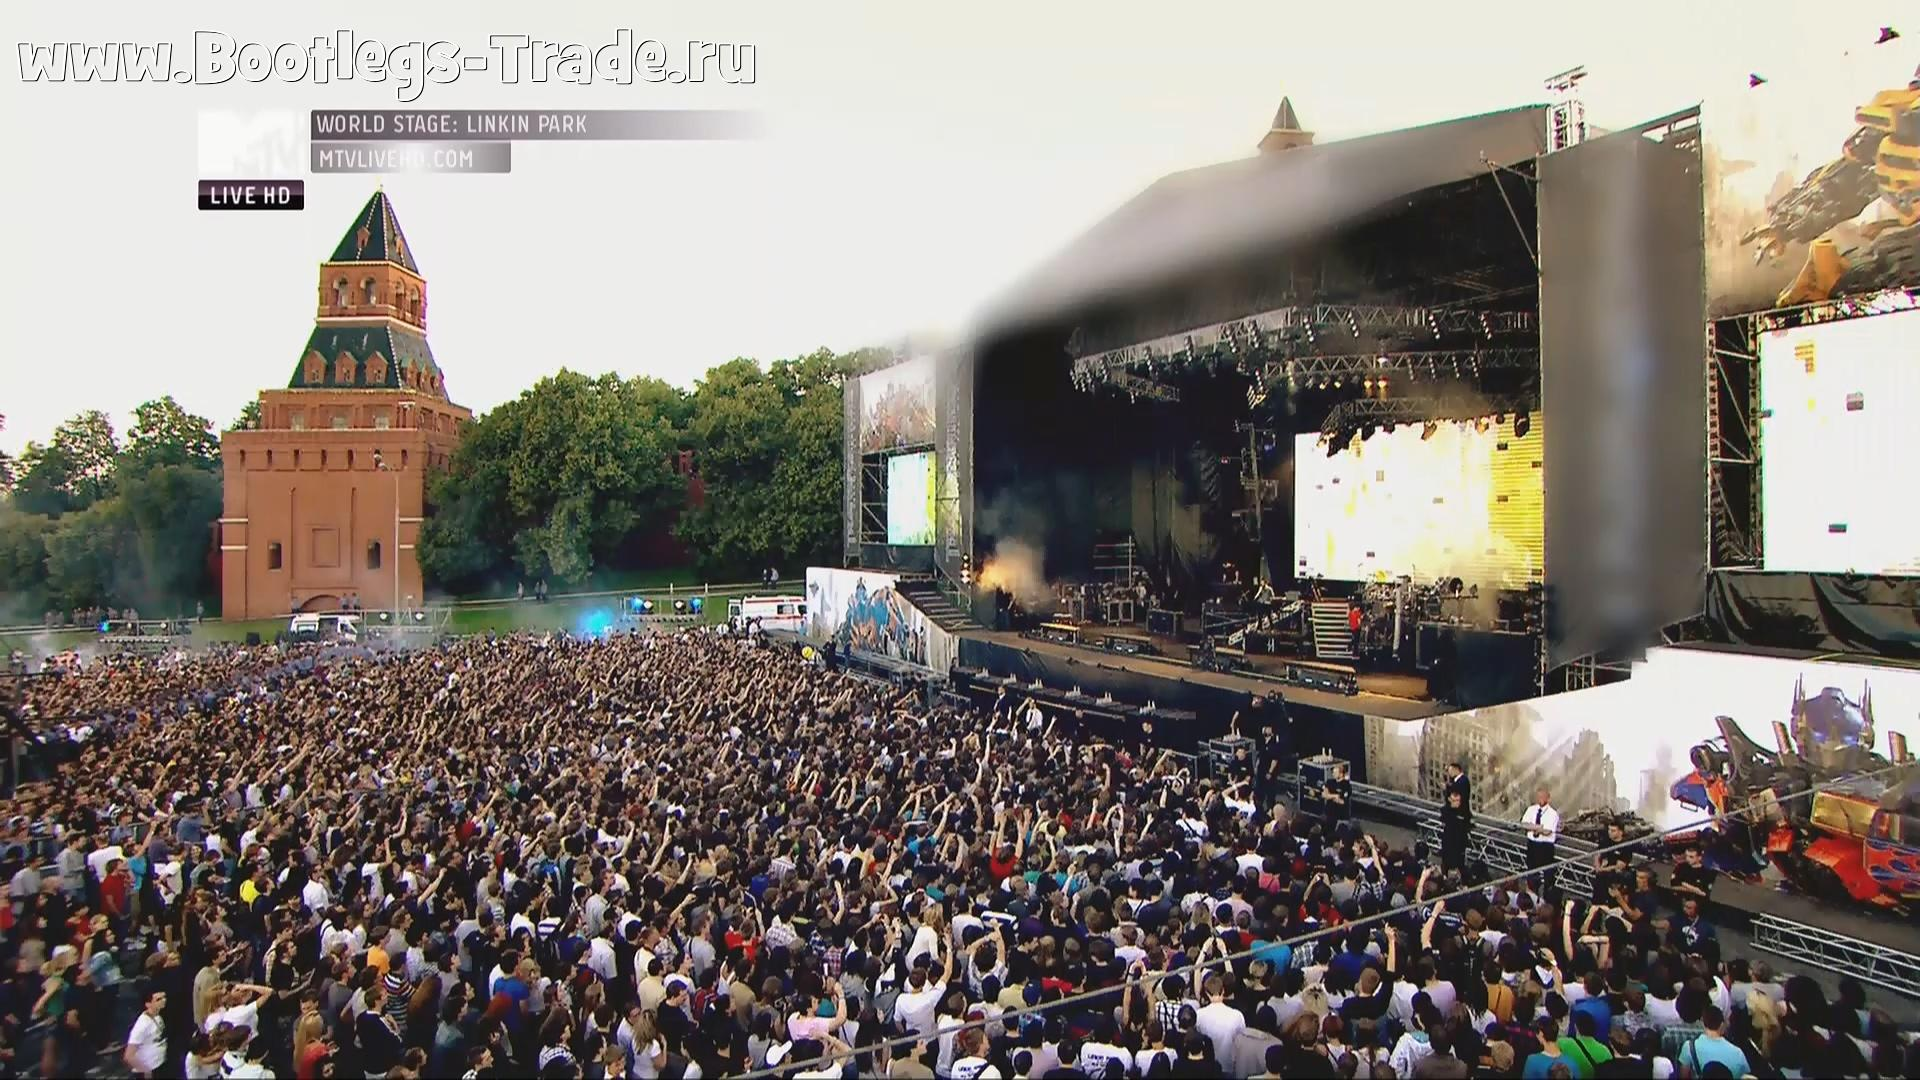 Linkin Park 2011-06-23 Red Square, Moscow, Russia (MTV Live HD 1080)